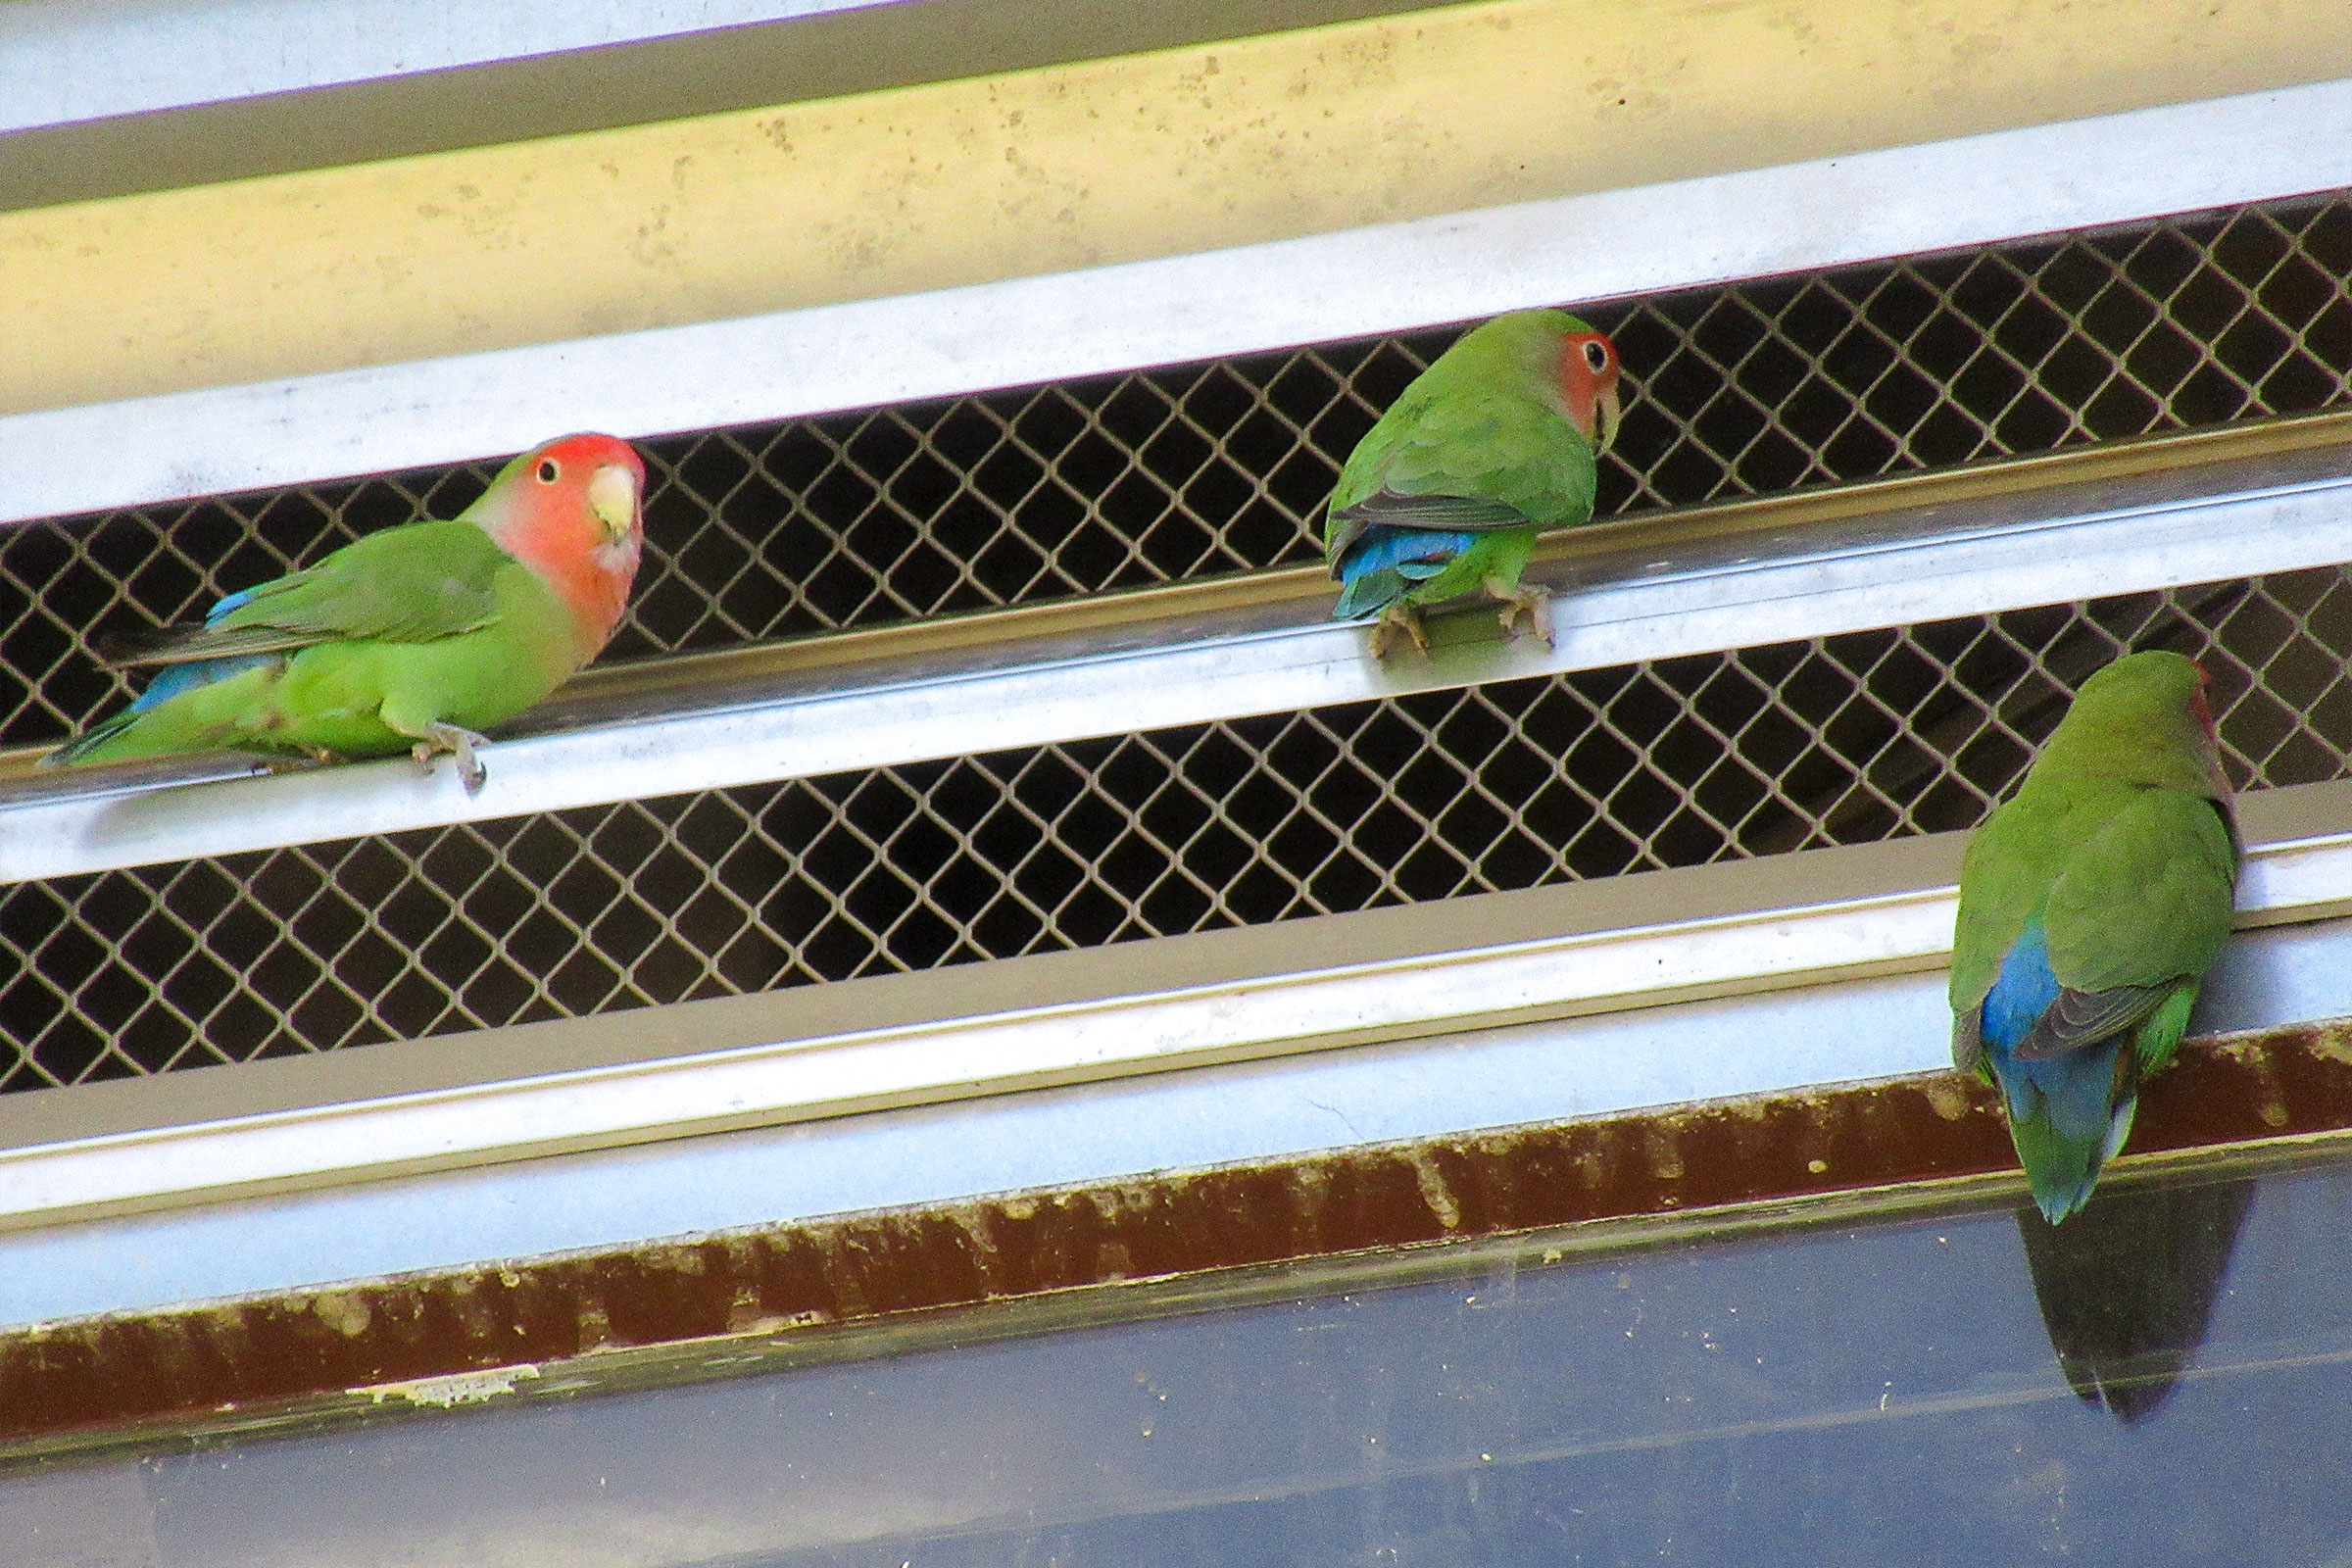 Rosy-faced Lovebirds perched near a building's air conditioning vent in Phoenix, Arizona. The birds only showed up when temperatures passed 90 degrees, and their number increased exponentially above 99 degrees. Kevin McGraw